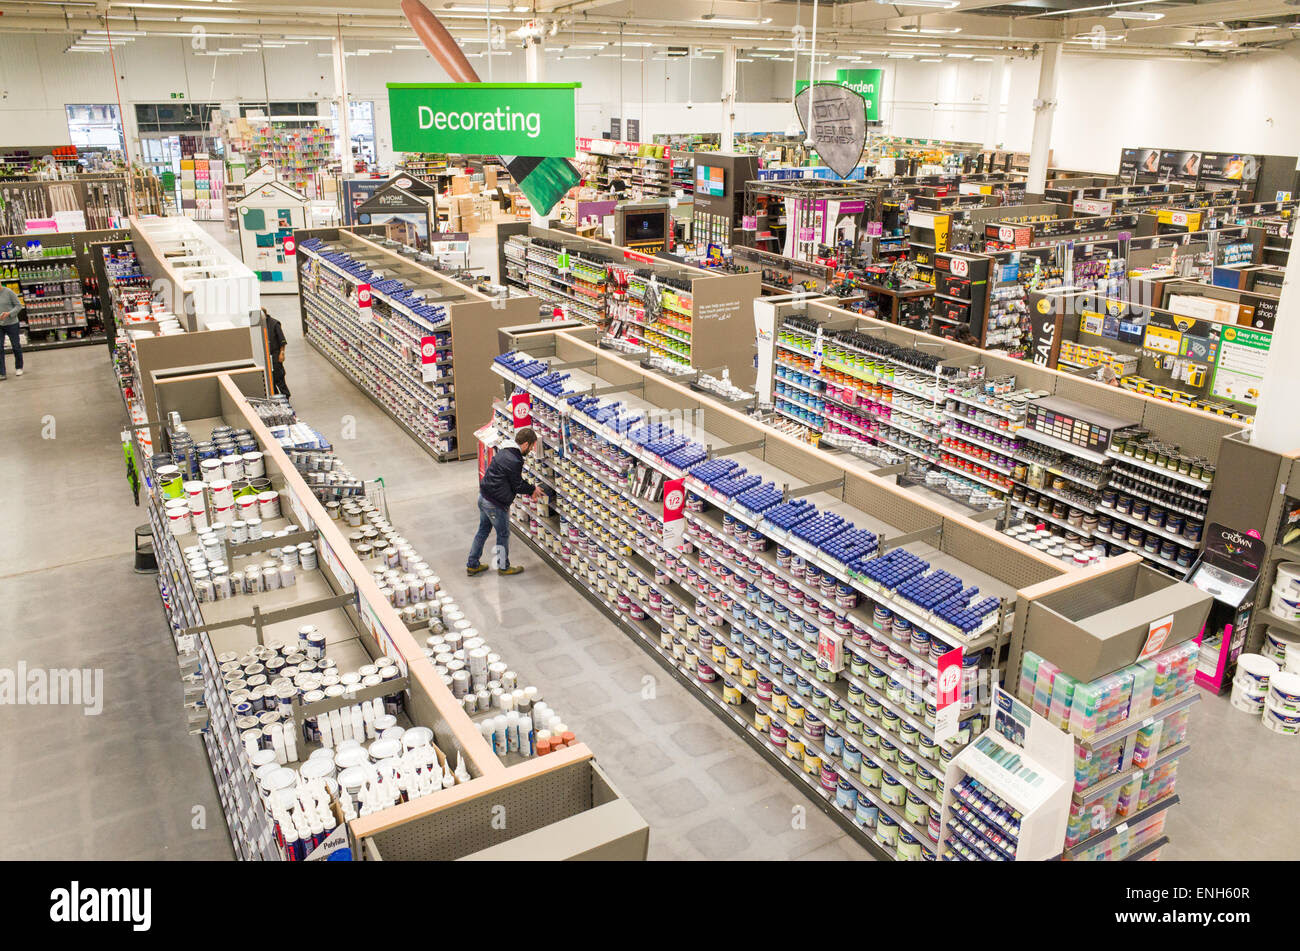 Decorating Store Stock Photos Decorating Store Stock Images Alamy